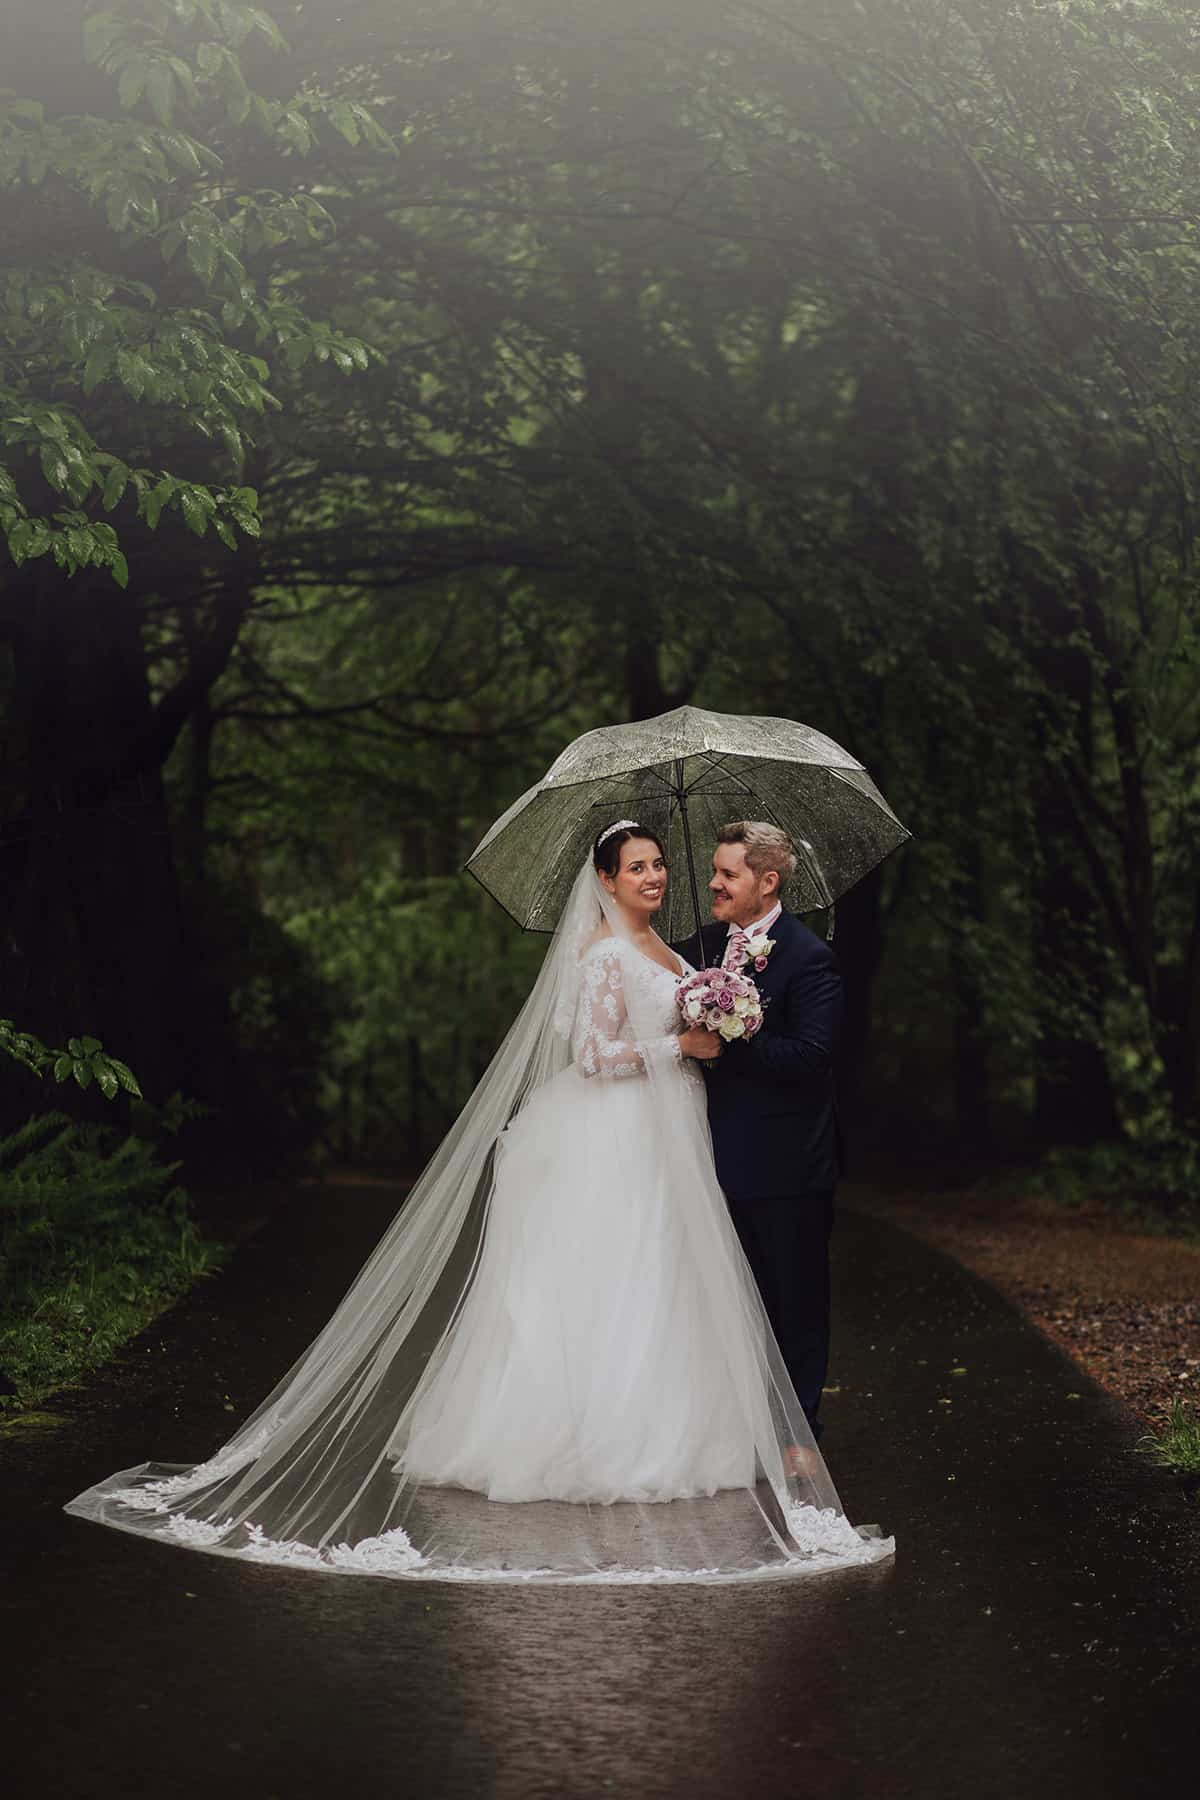 Bride and groom with cathedral length veil in the rain under umbrella